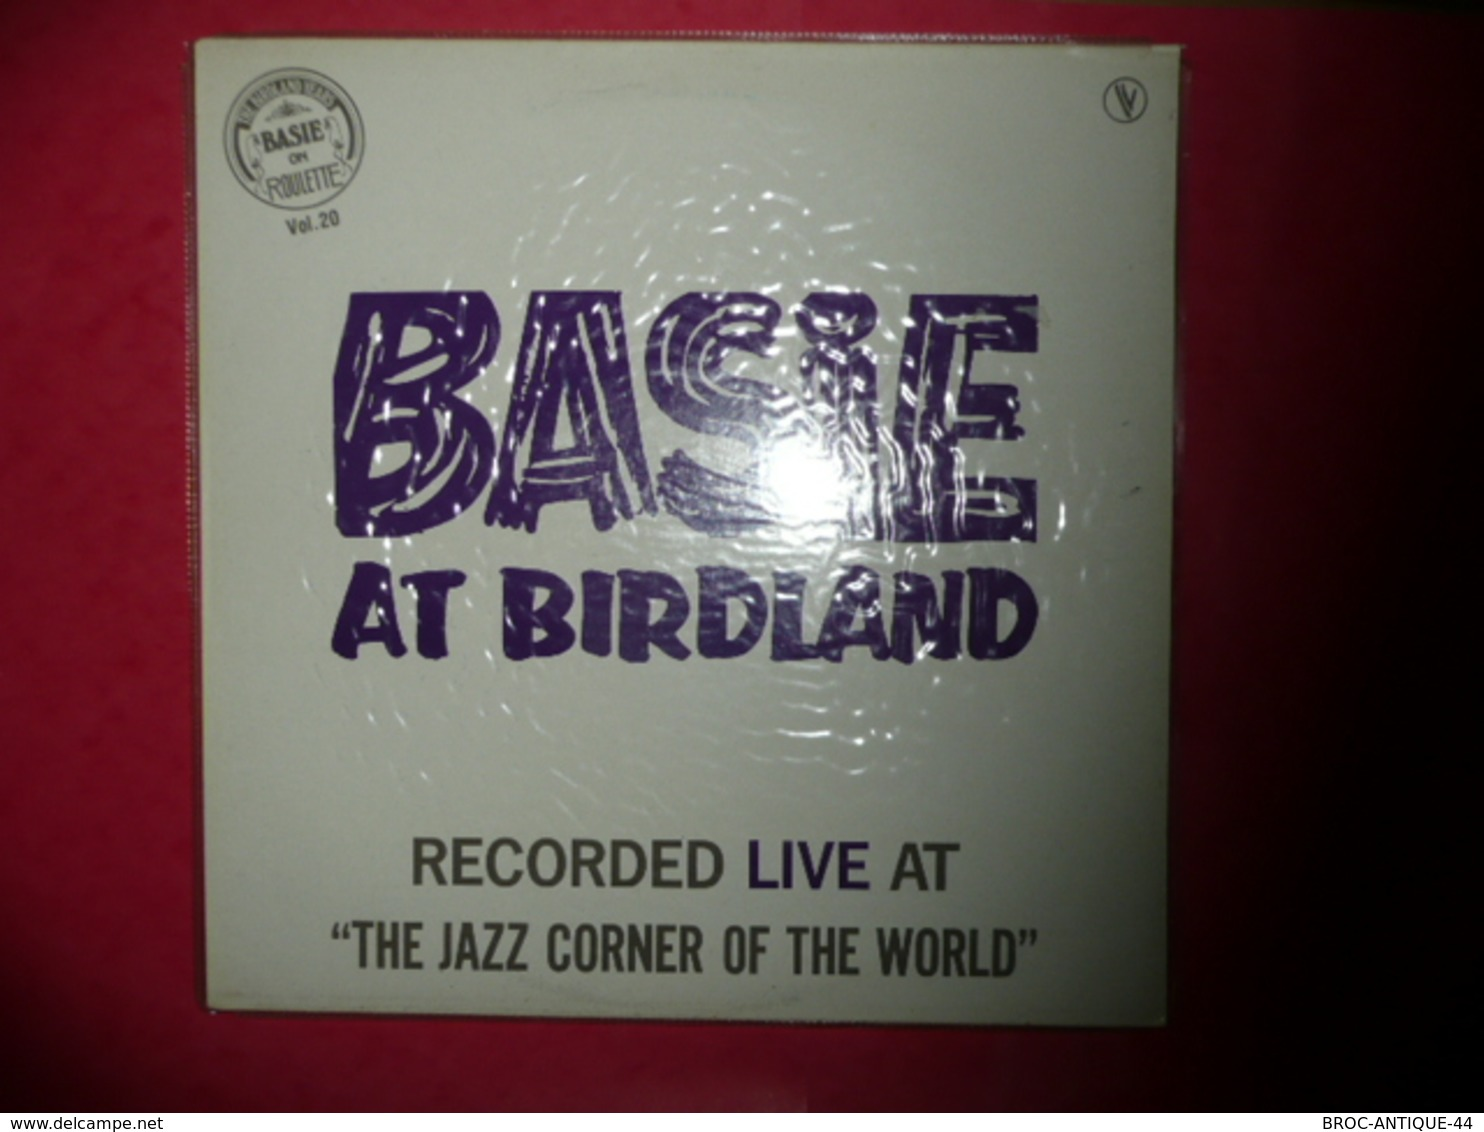 LP33 N°577 - BASIE AT BIRDLAND - RECORDED LIVE AT THE JAZZ CORNER OF THE WORLD - COMPILATION 9 TITRES - Jazz